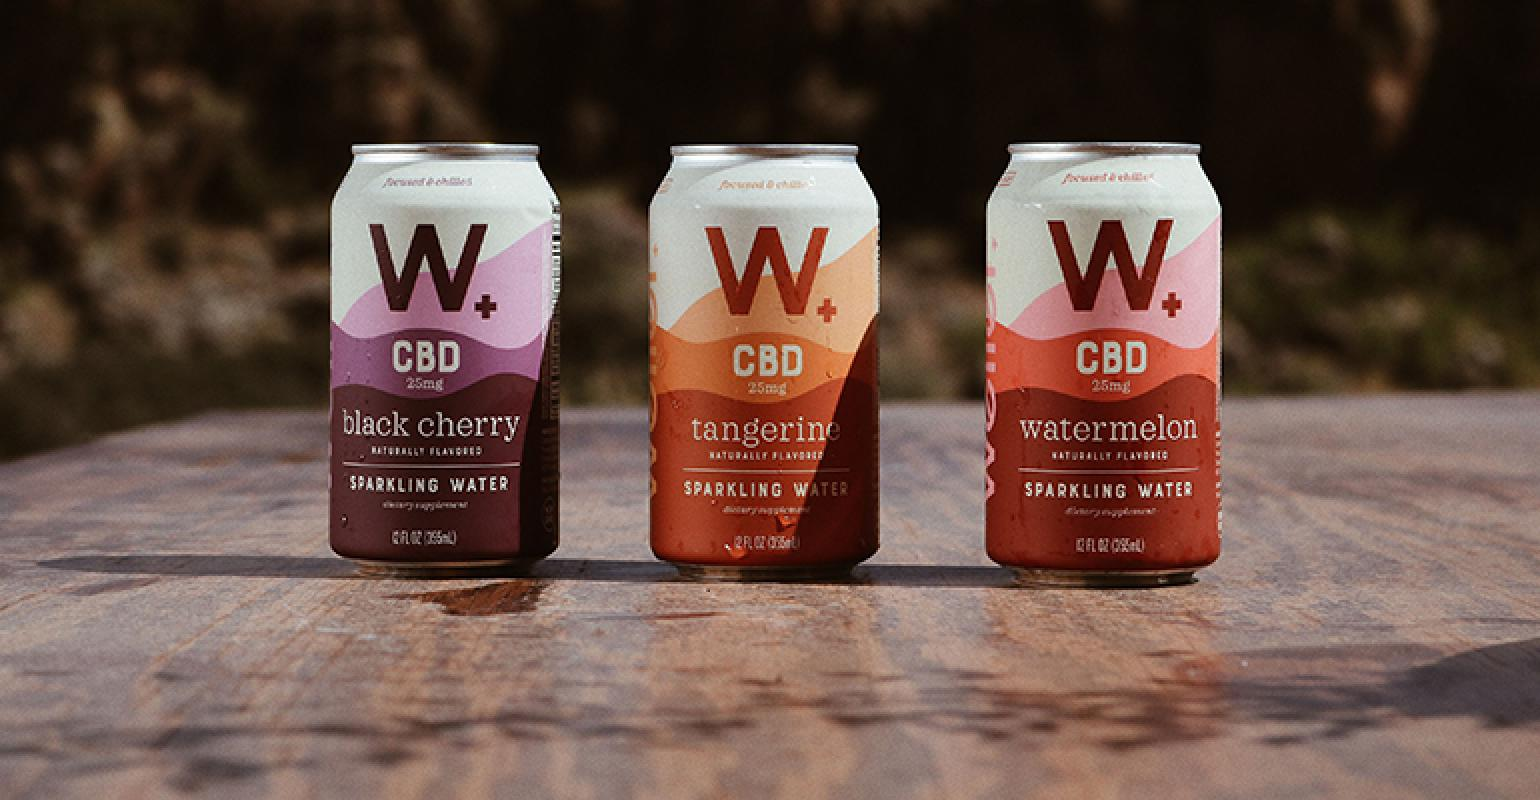 Weller makes it a snap to snack and sip on CBD | New Hope Network